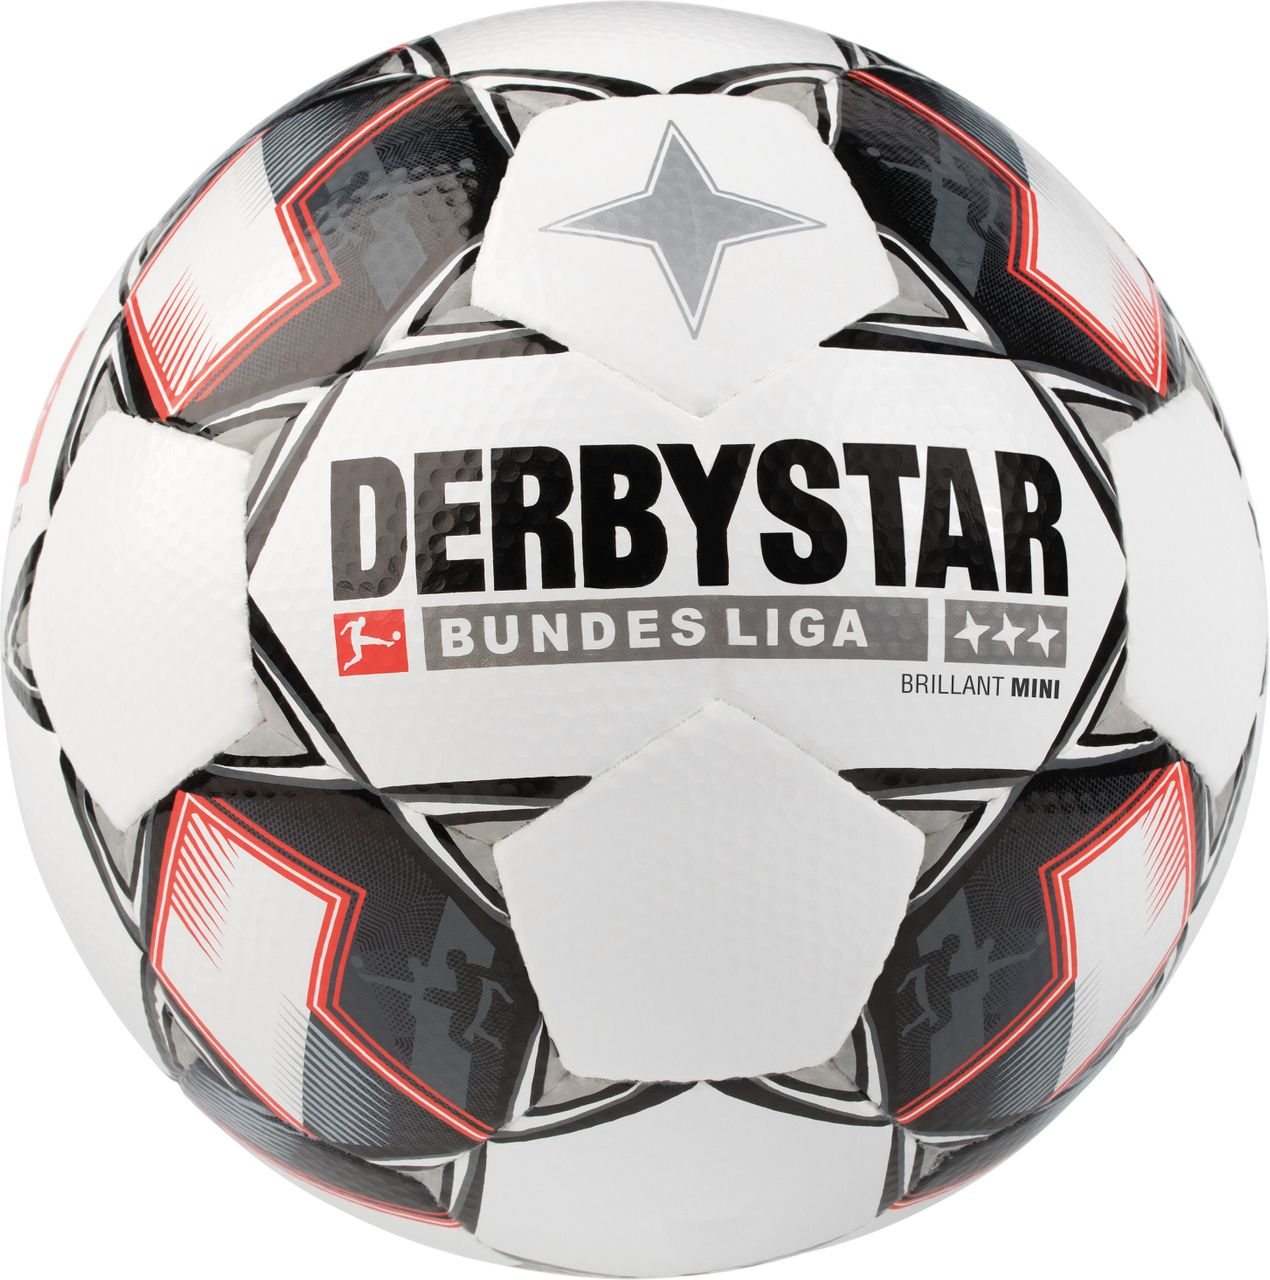 DERBYSTAR Miniball - BUNDESLIGA